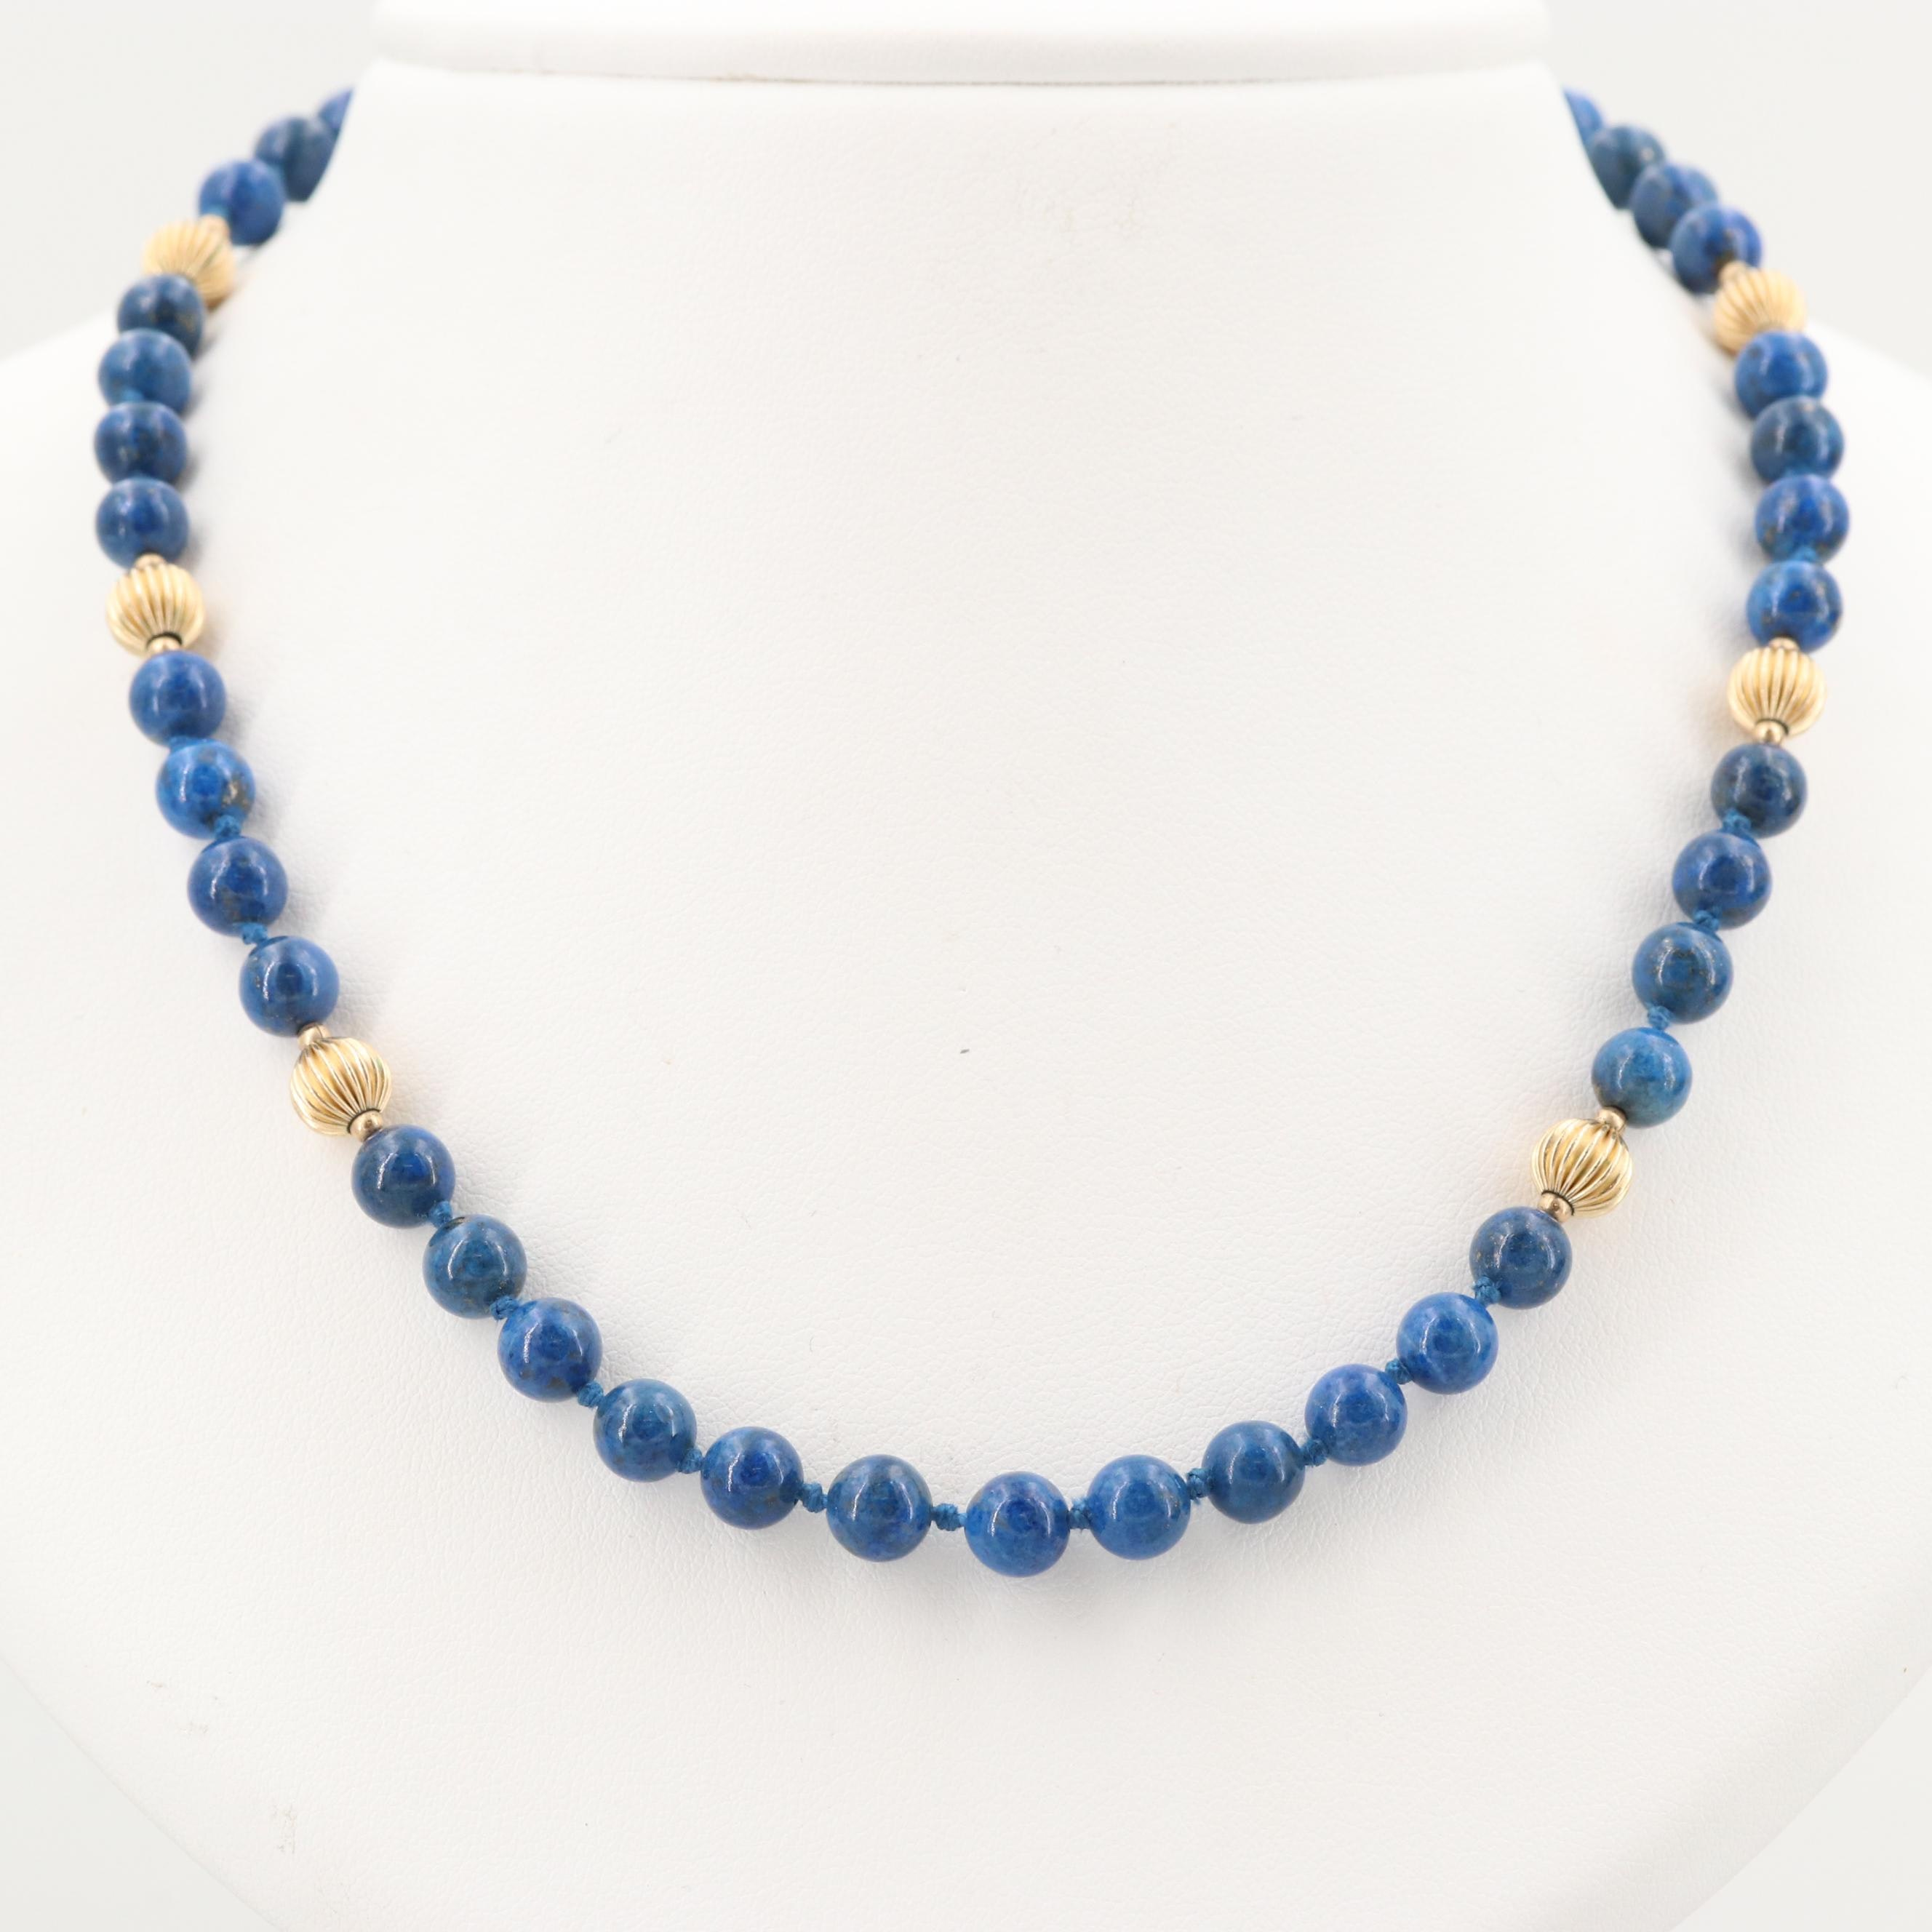 Lapis Lazuli Beaded Necklace with Gold Tone Station Beads